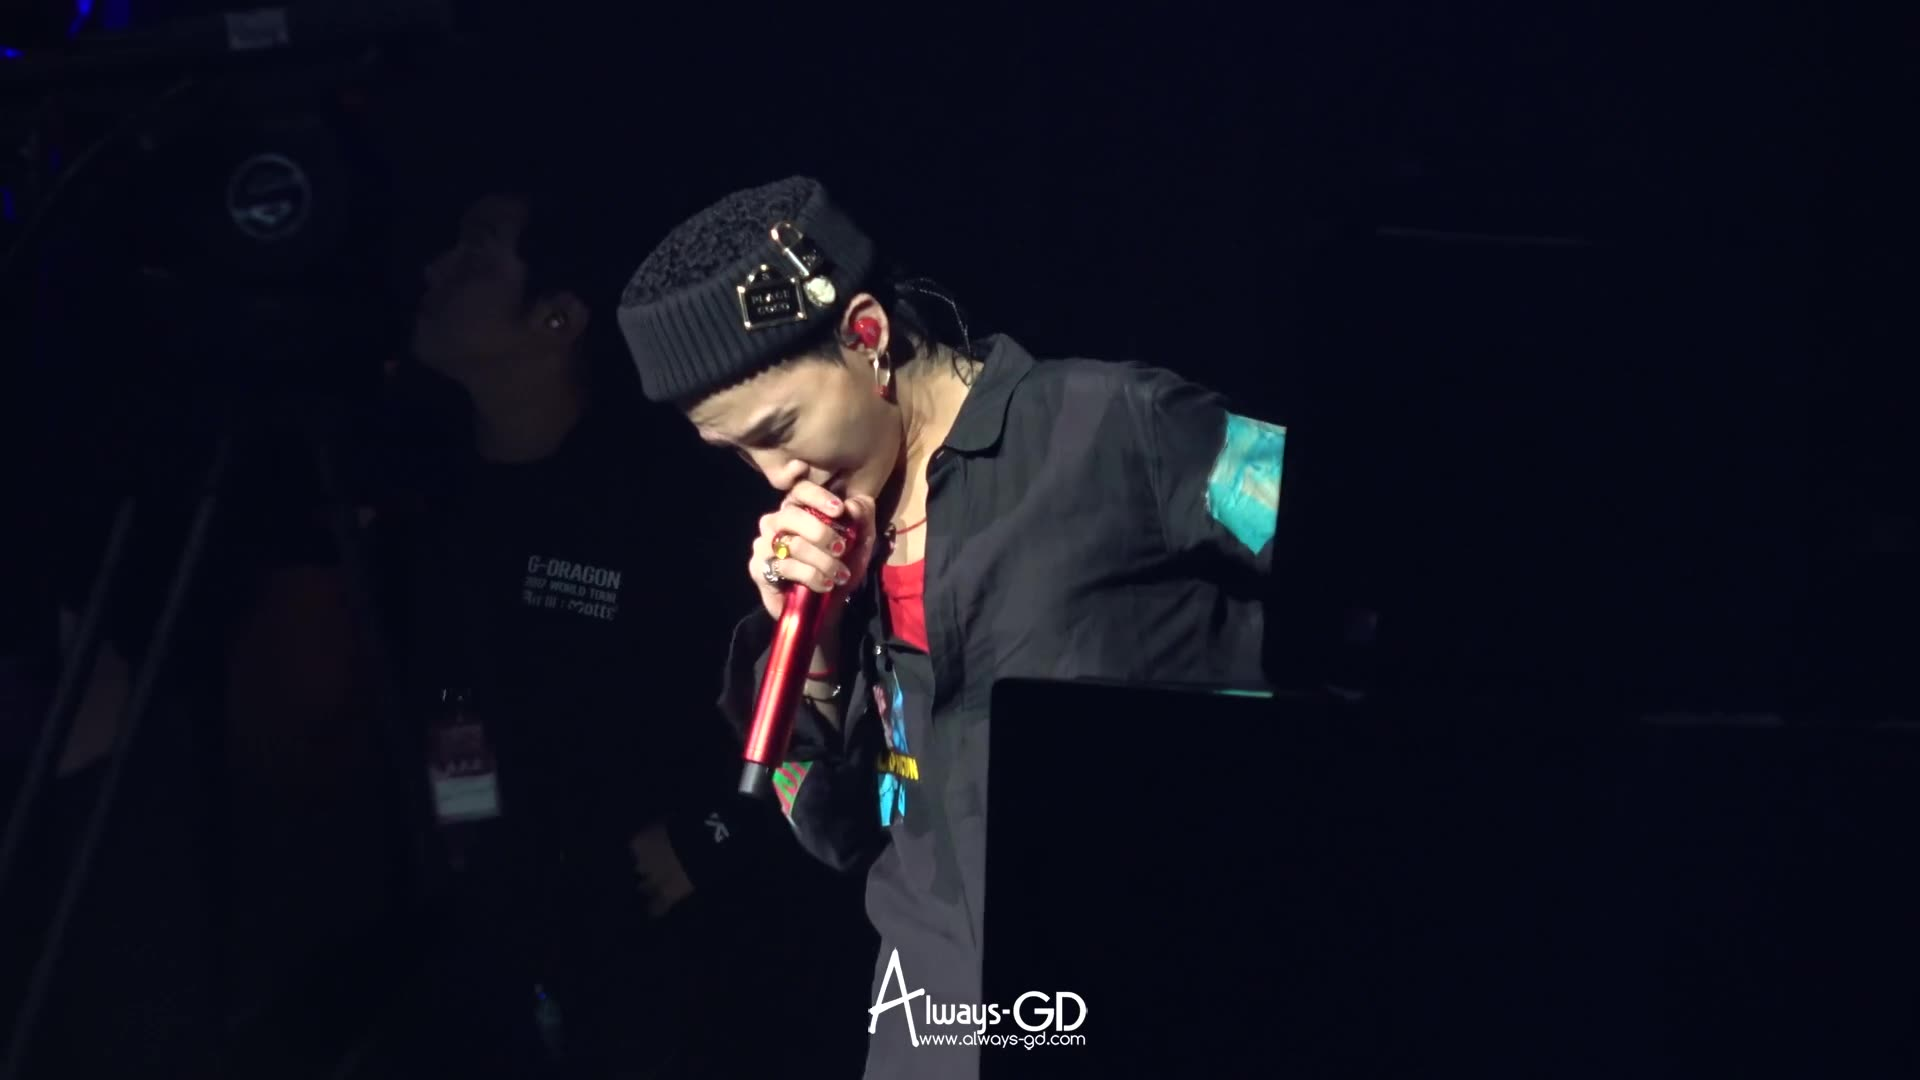 170711 ACT III M.O.T.T.E in Seattle G-Dragon 饭拍合辑 (cr.AG)